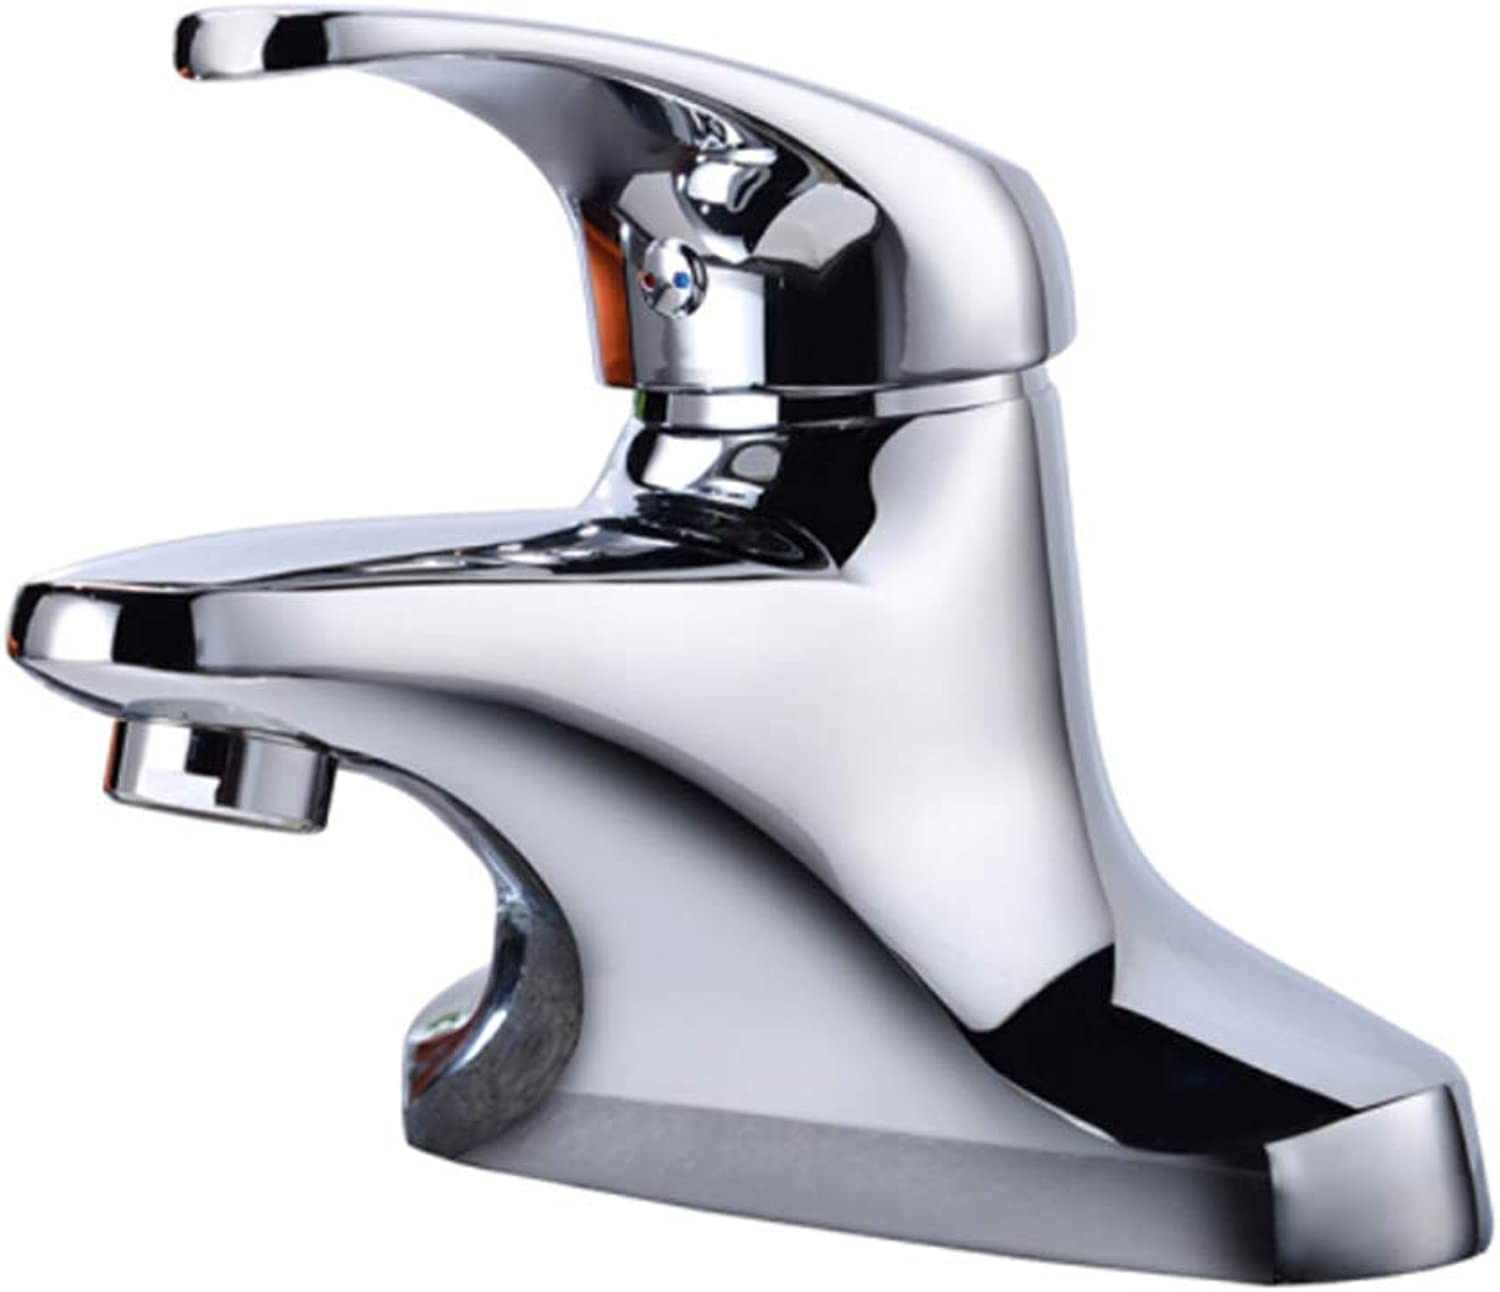 Pull Out The Pull Down Stainless Steelbasin Hot and Cold Dual Hole Faucet Basin Faucet Faucet